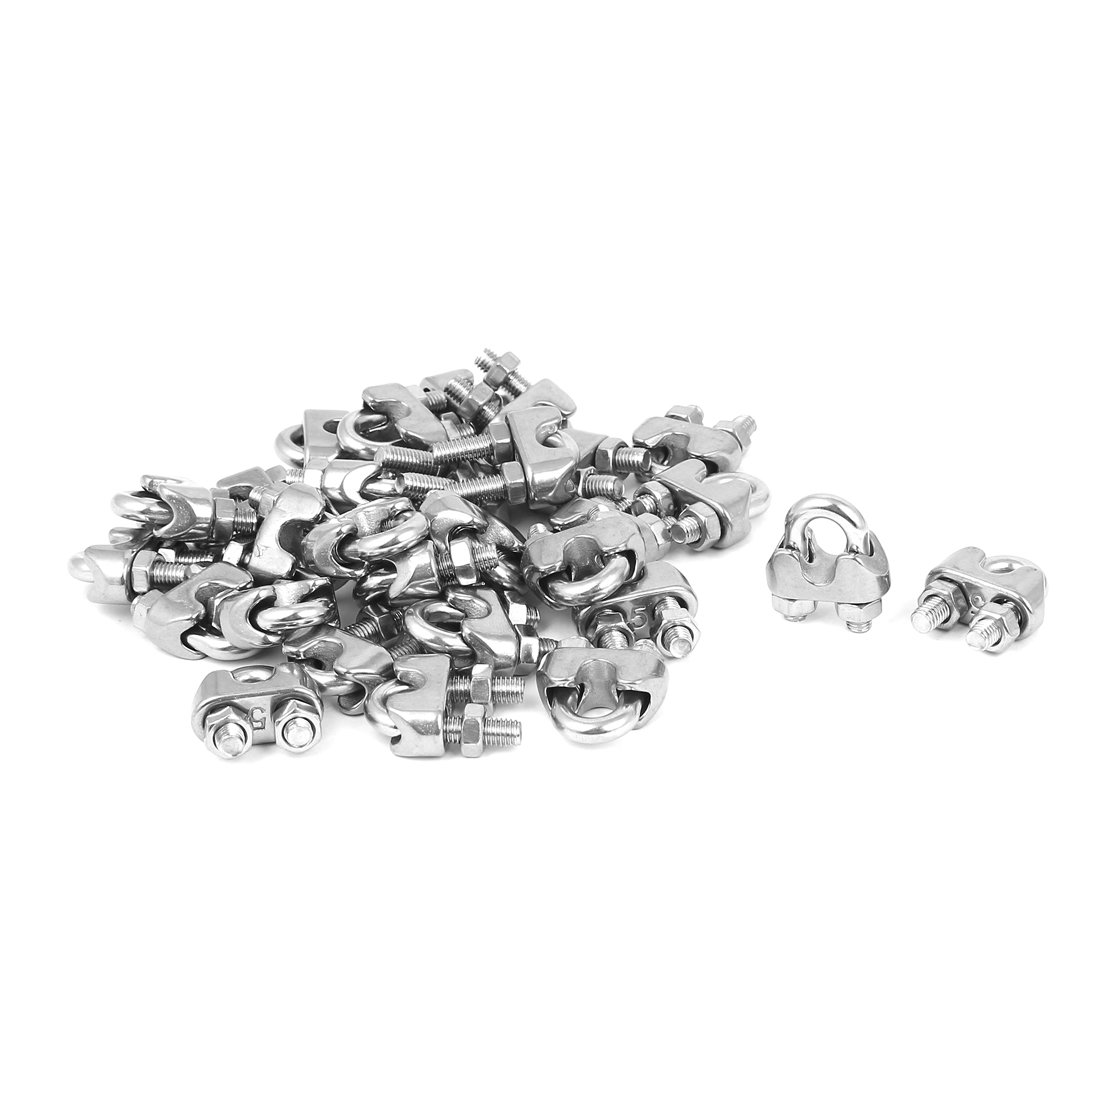 Metal Saddle Clamp Cable Clip Silver Tone 30 Pcs for 5mm Wire Rope